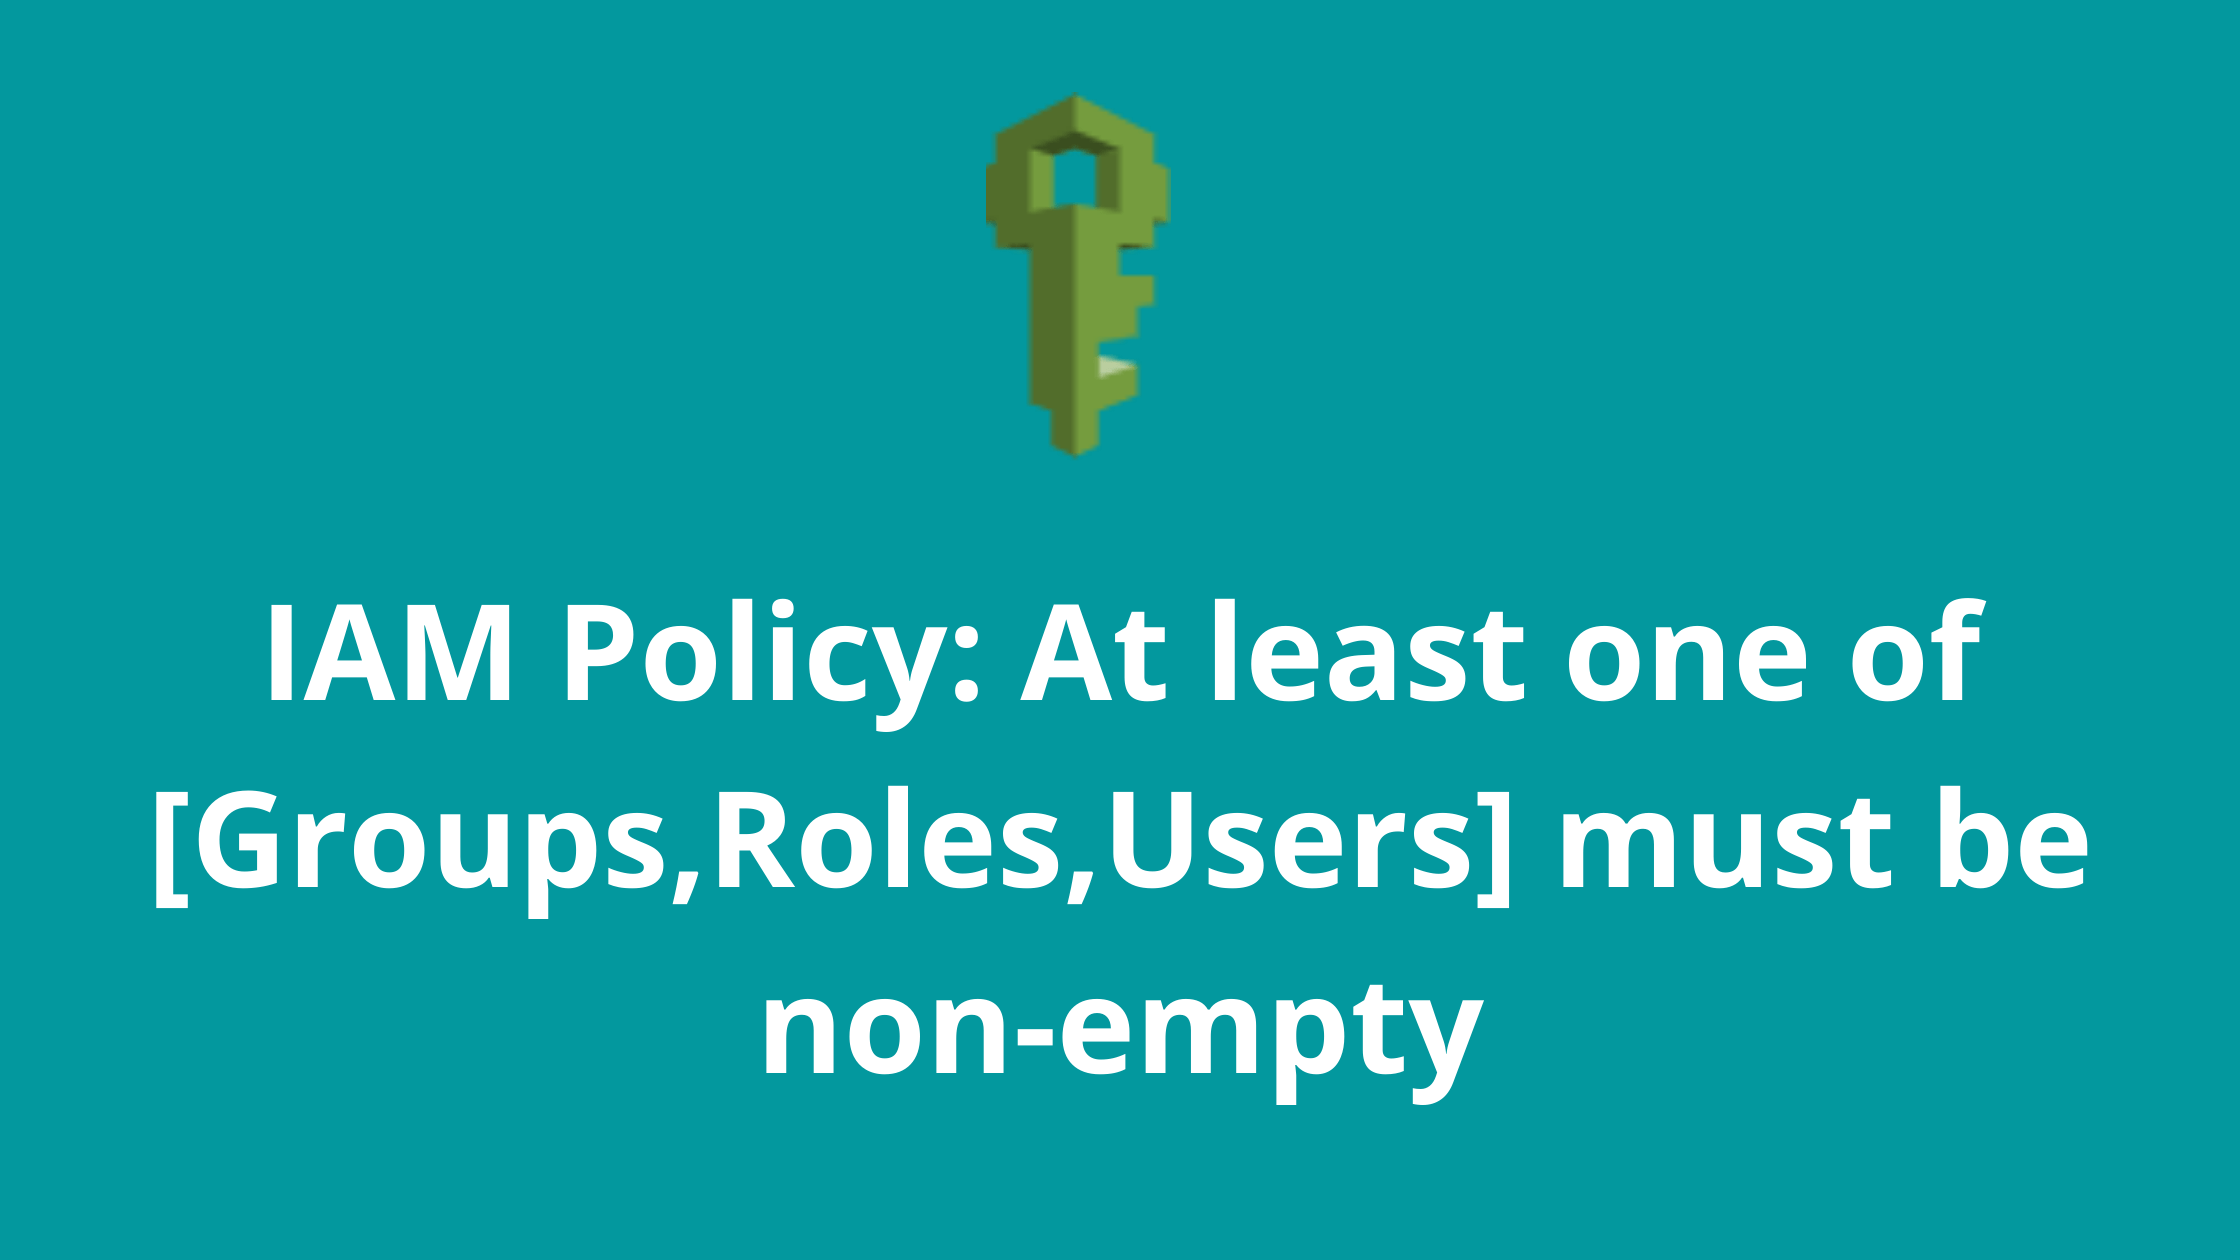 IAM Policy At least one of [Groups,Roles,Users] must be non-empty